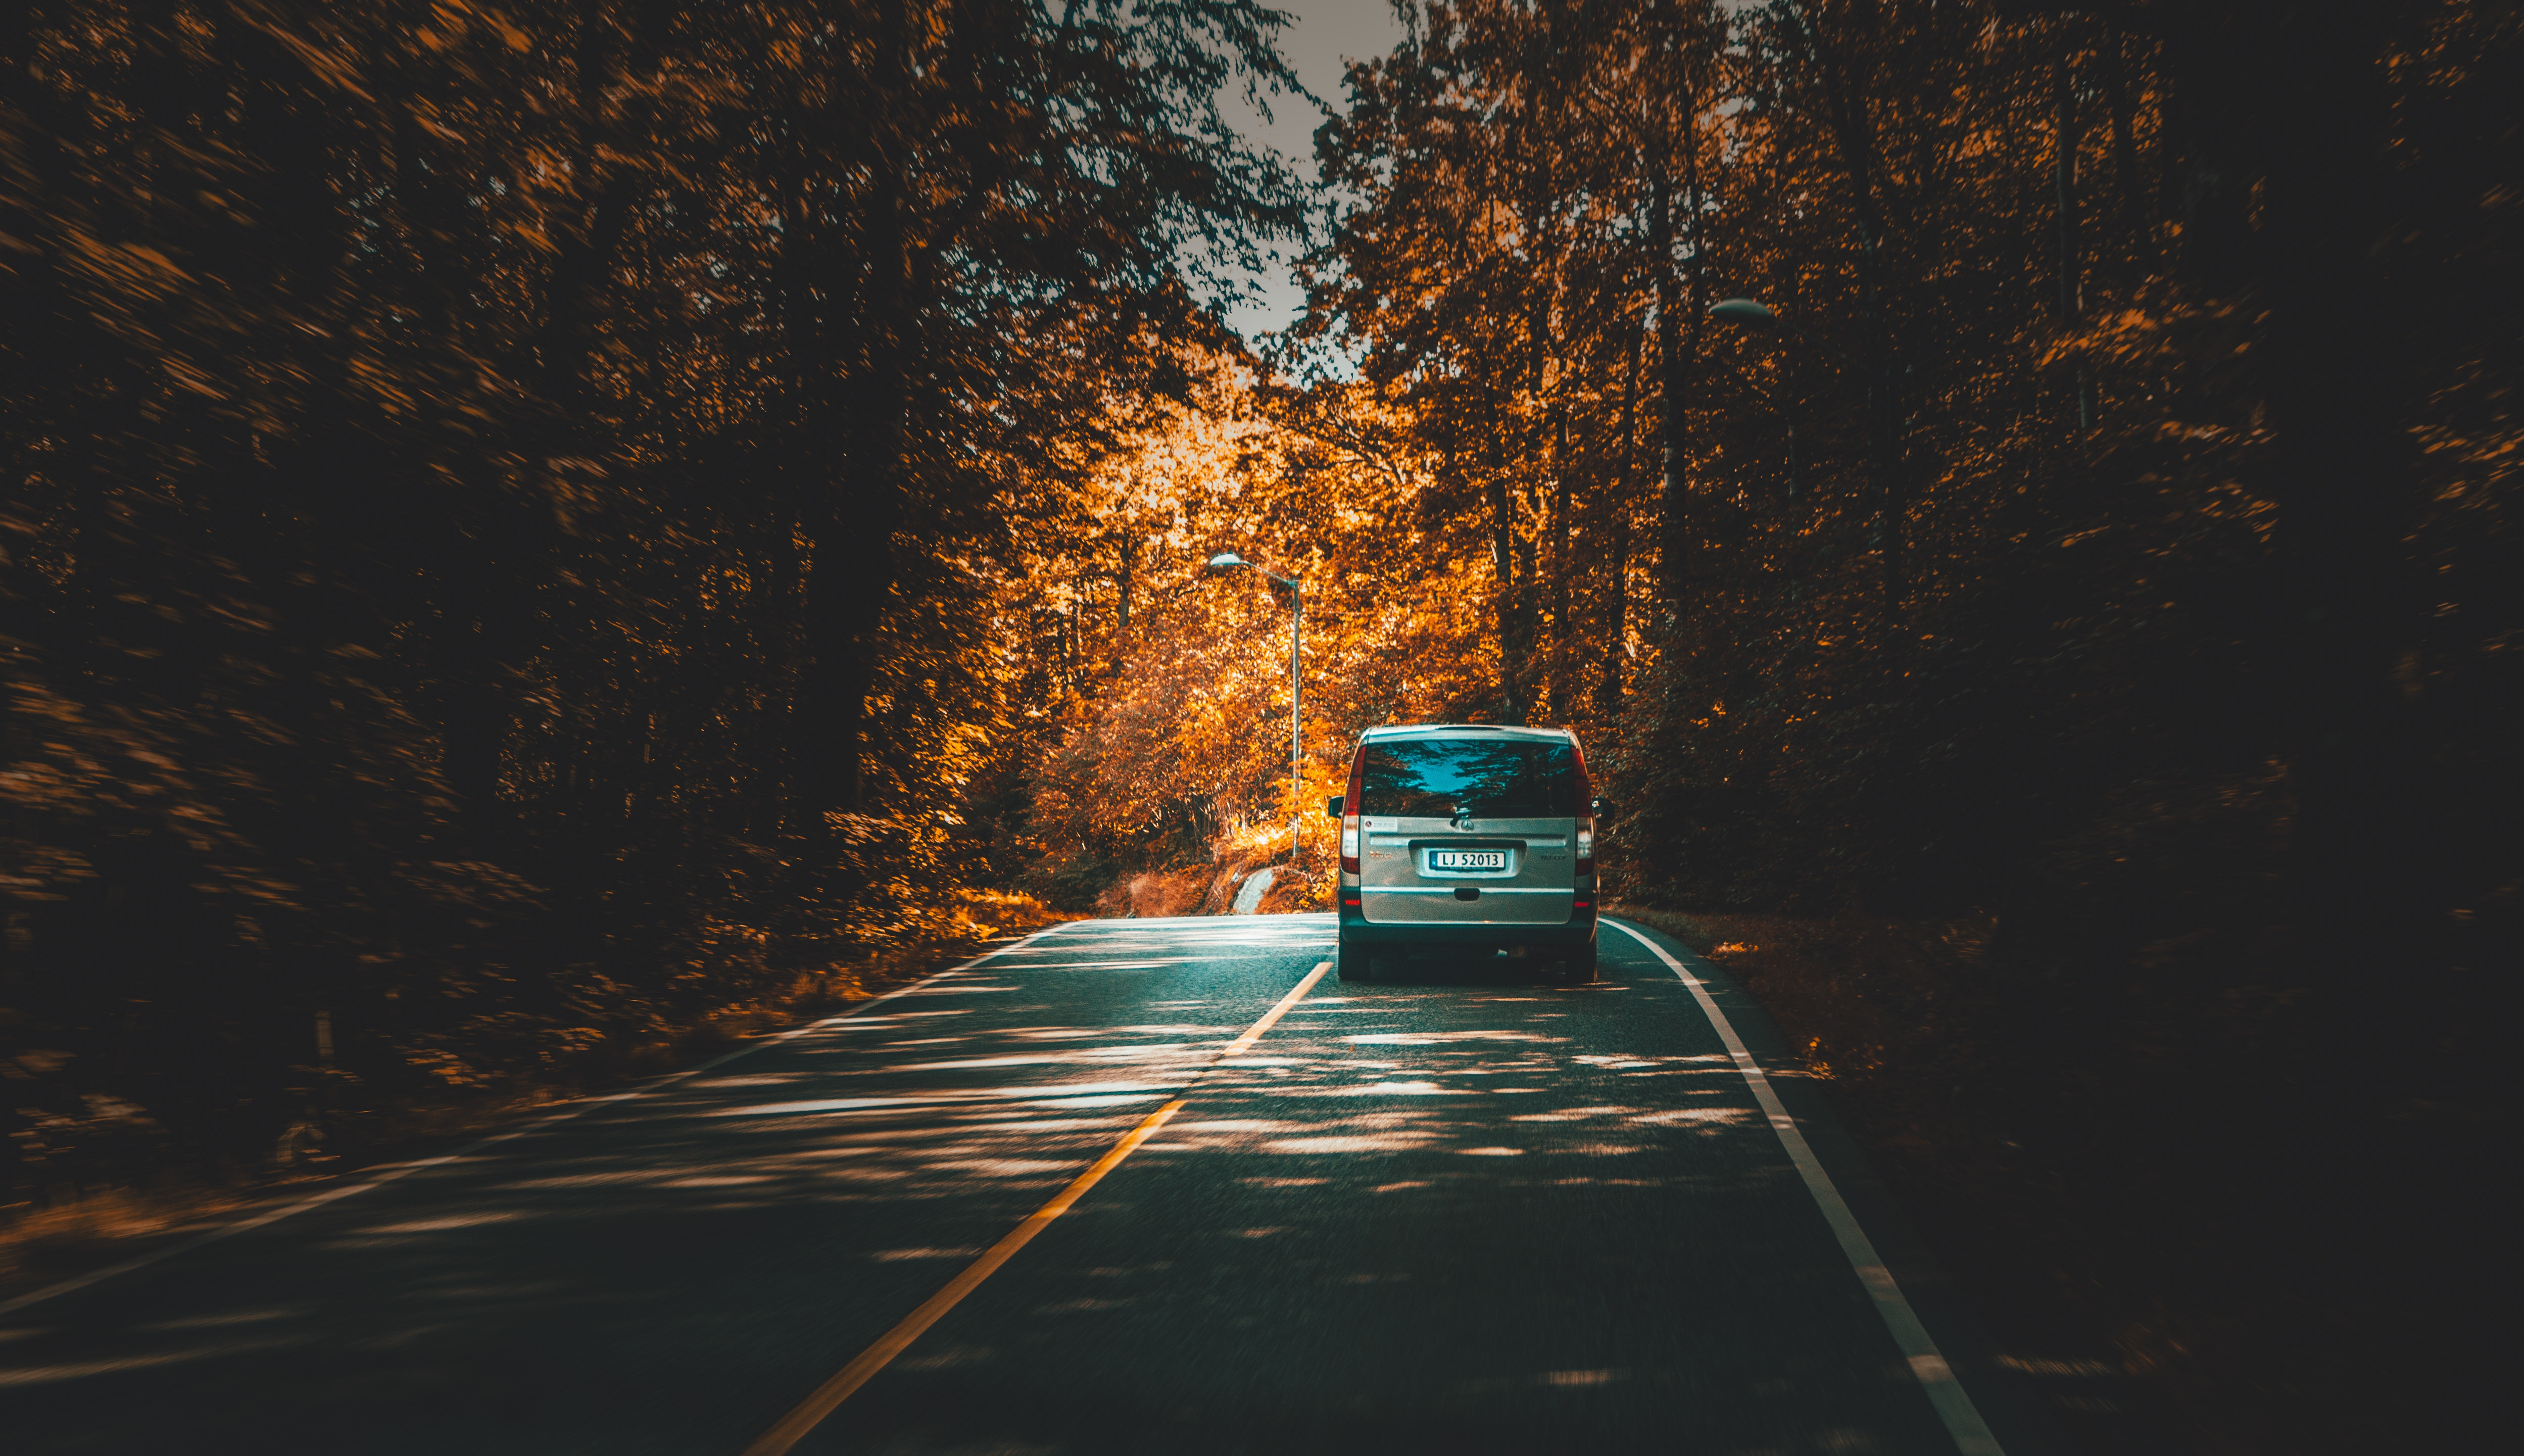 Silver van traveling on highway lined with trees during daytime photo